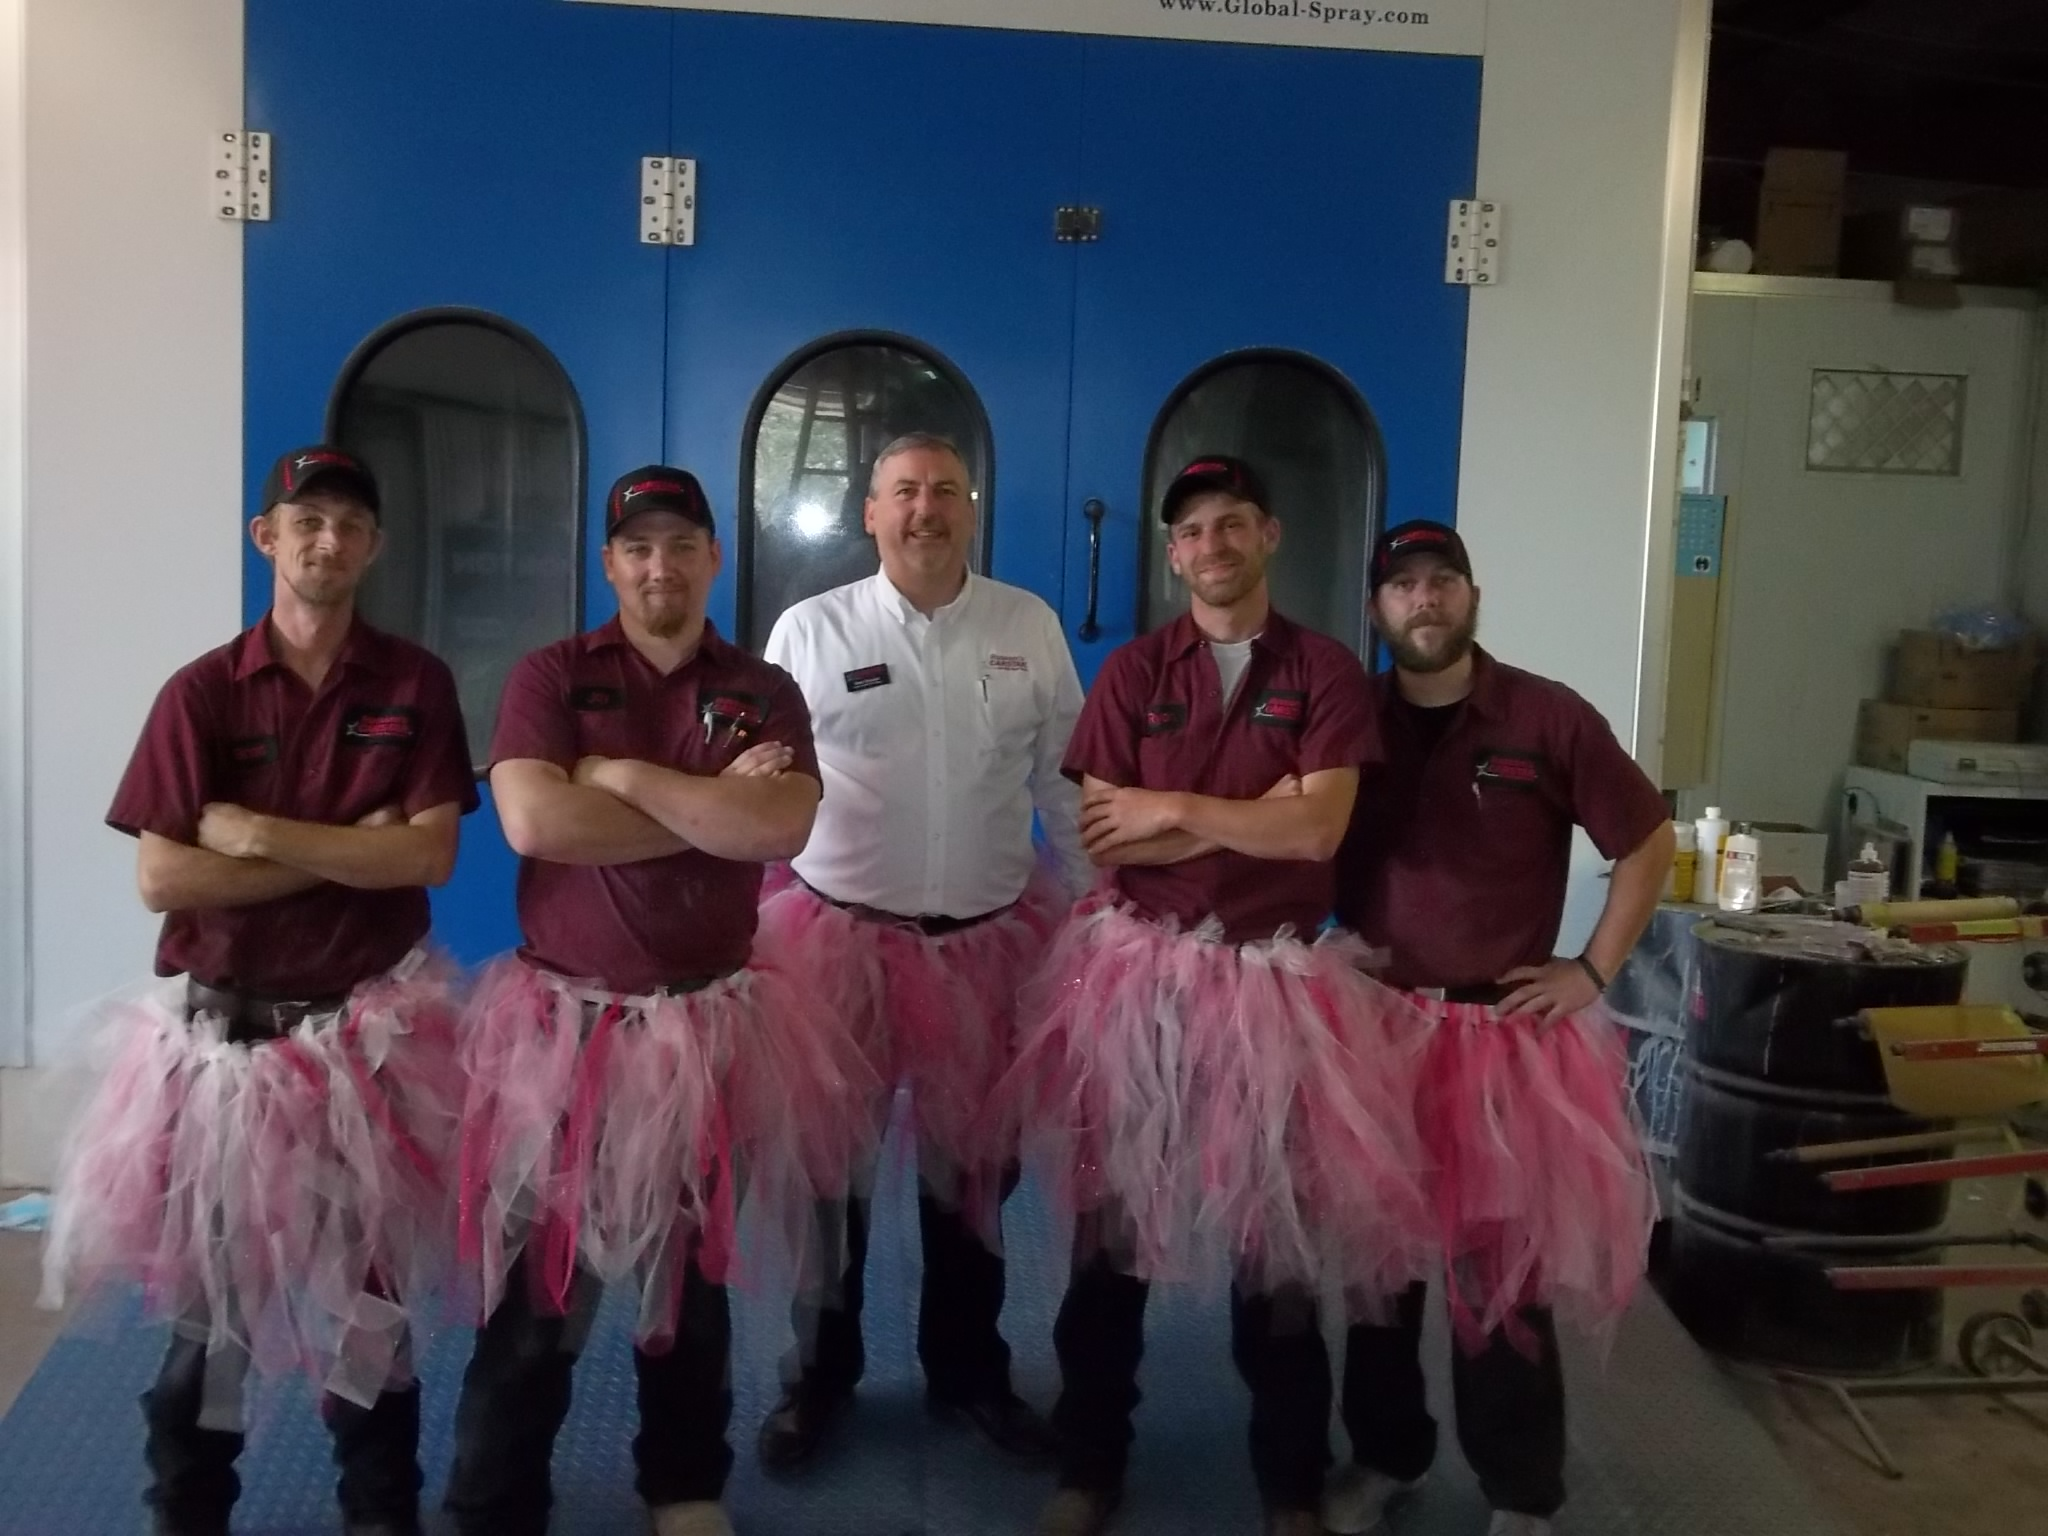 Russom's CARSTAR: Team in Tutus